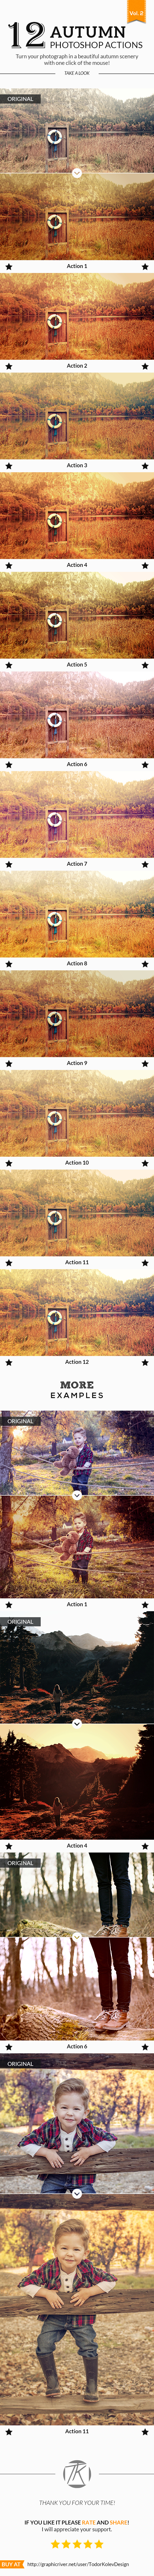 12 Autumn Photoshop Actions No.02 - Photo Effects Actions